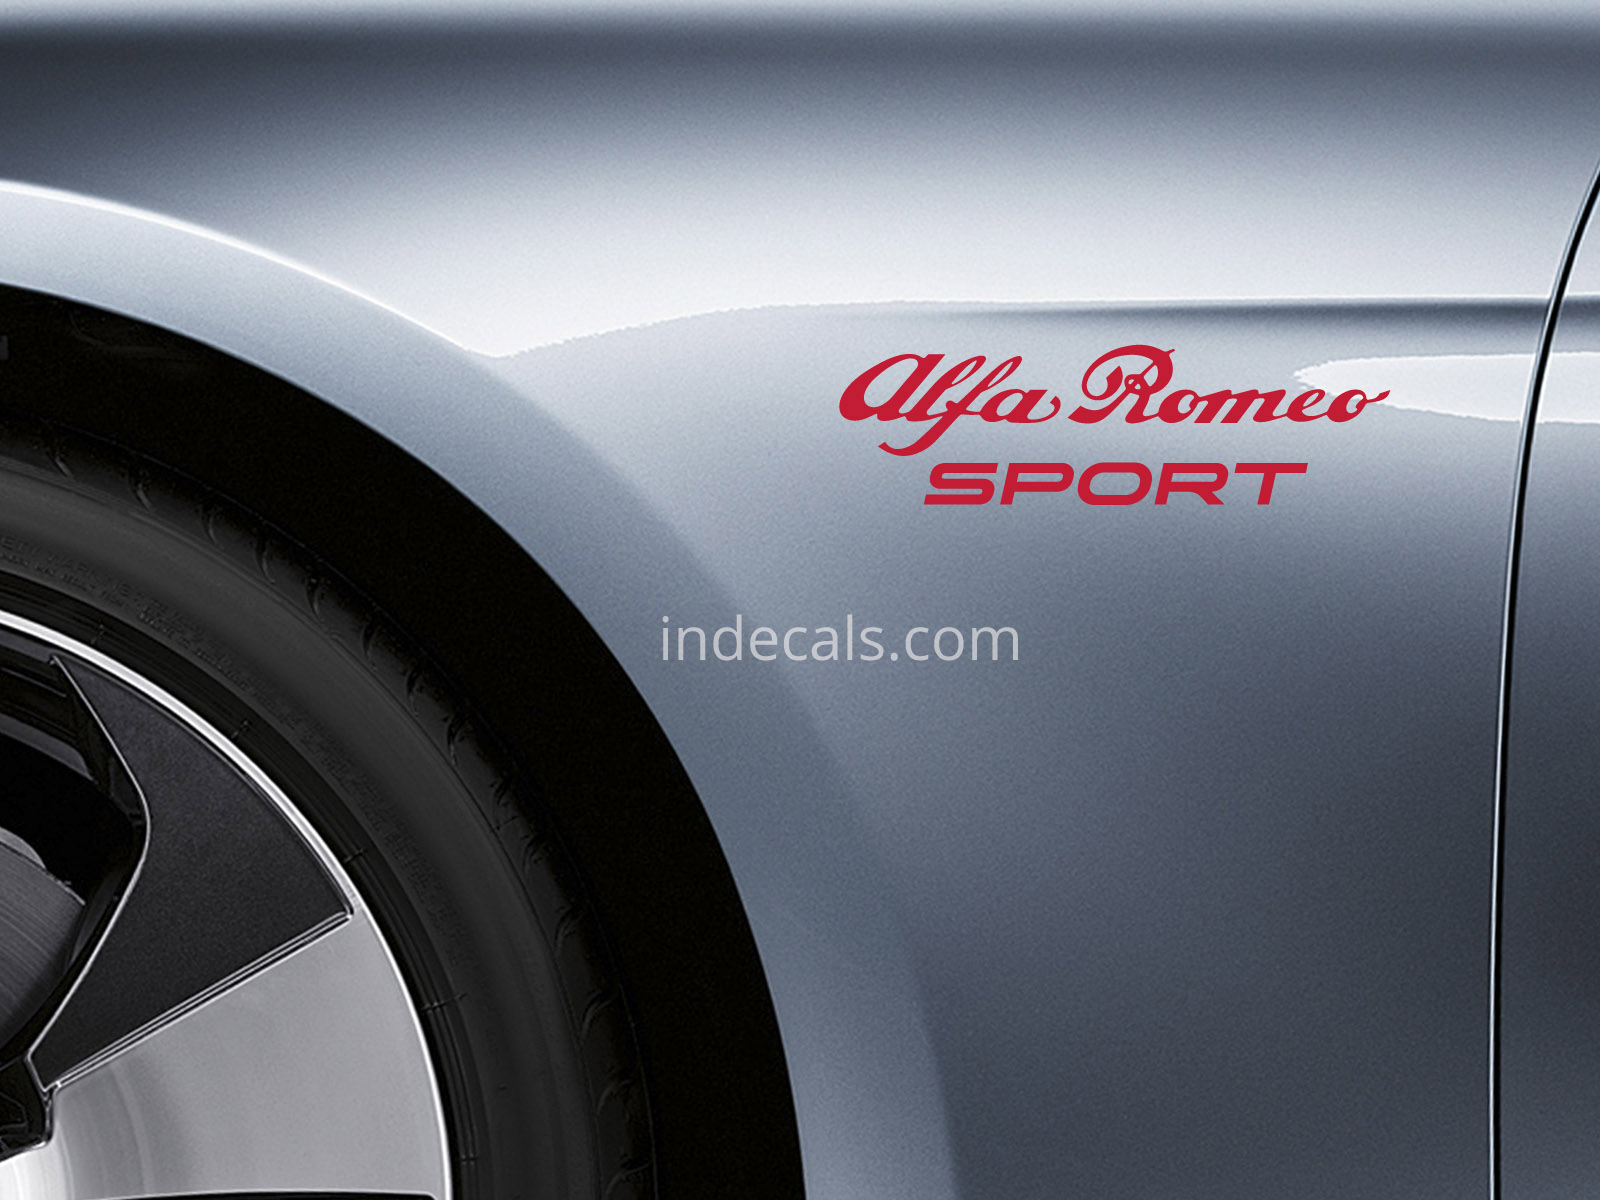 2 x Alfa Romeo Sports stickers for Wings - Red